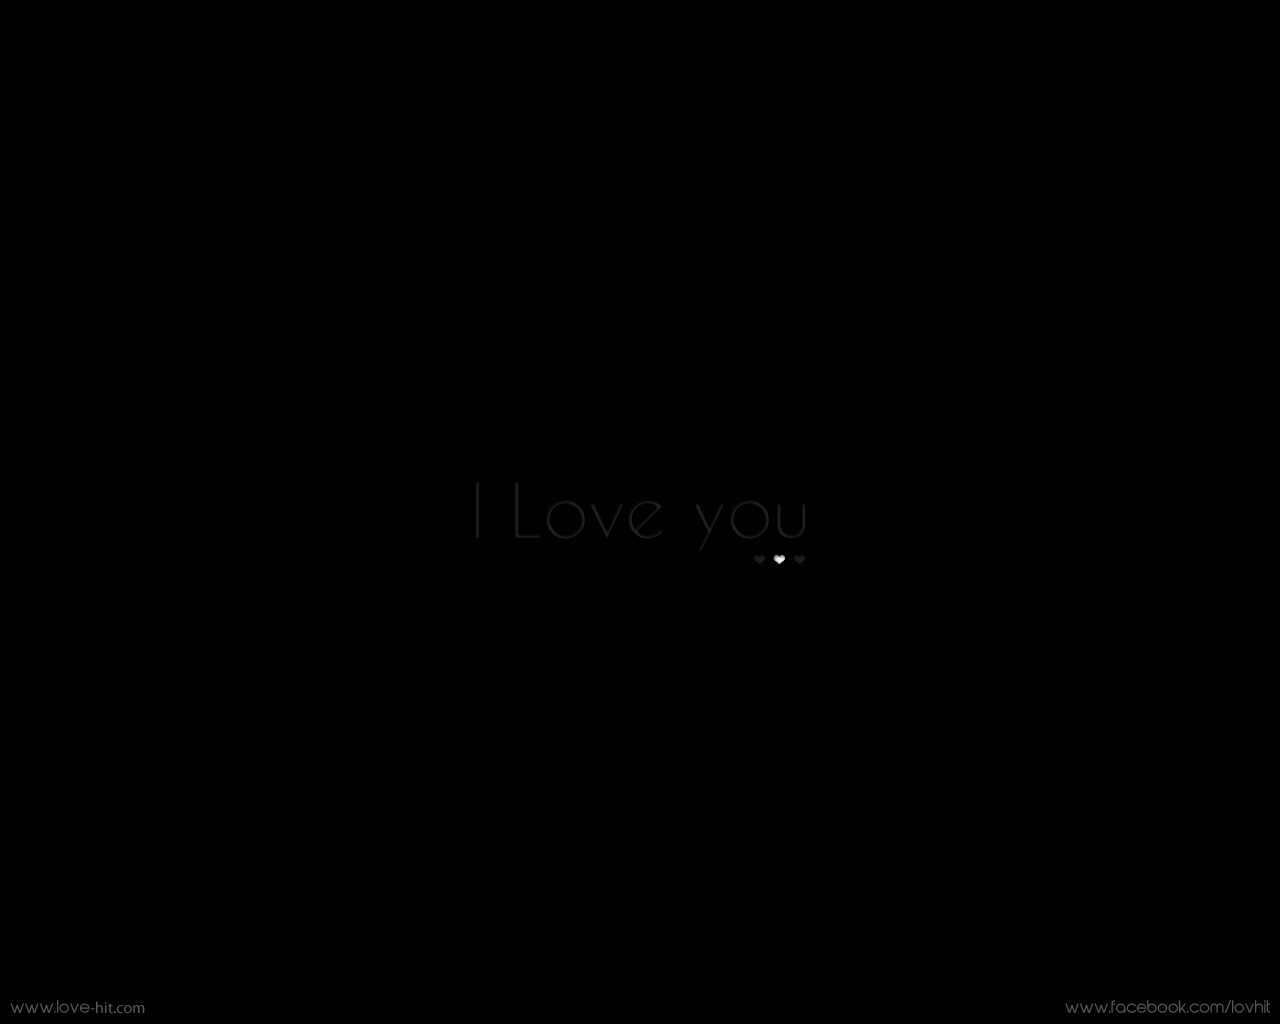 Love Wallpaper With Black Background : I Love you- black background